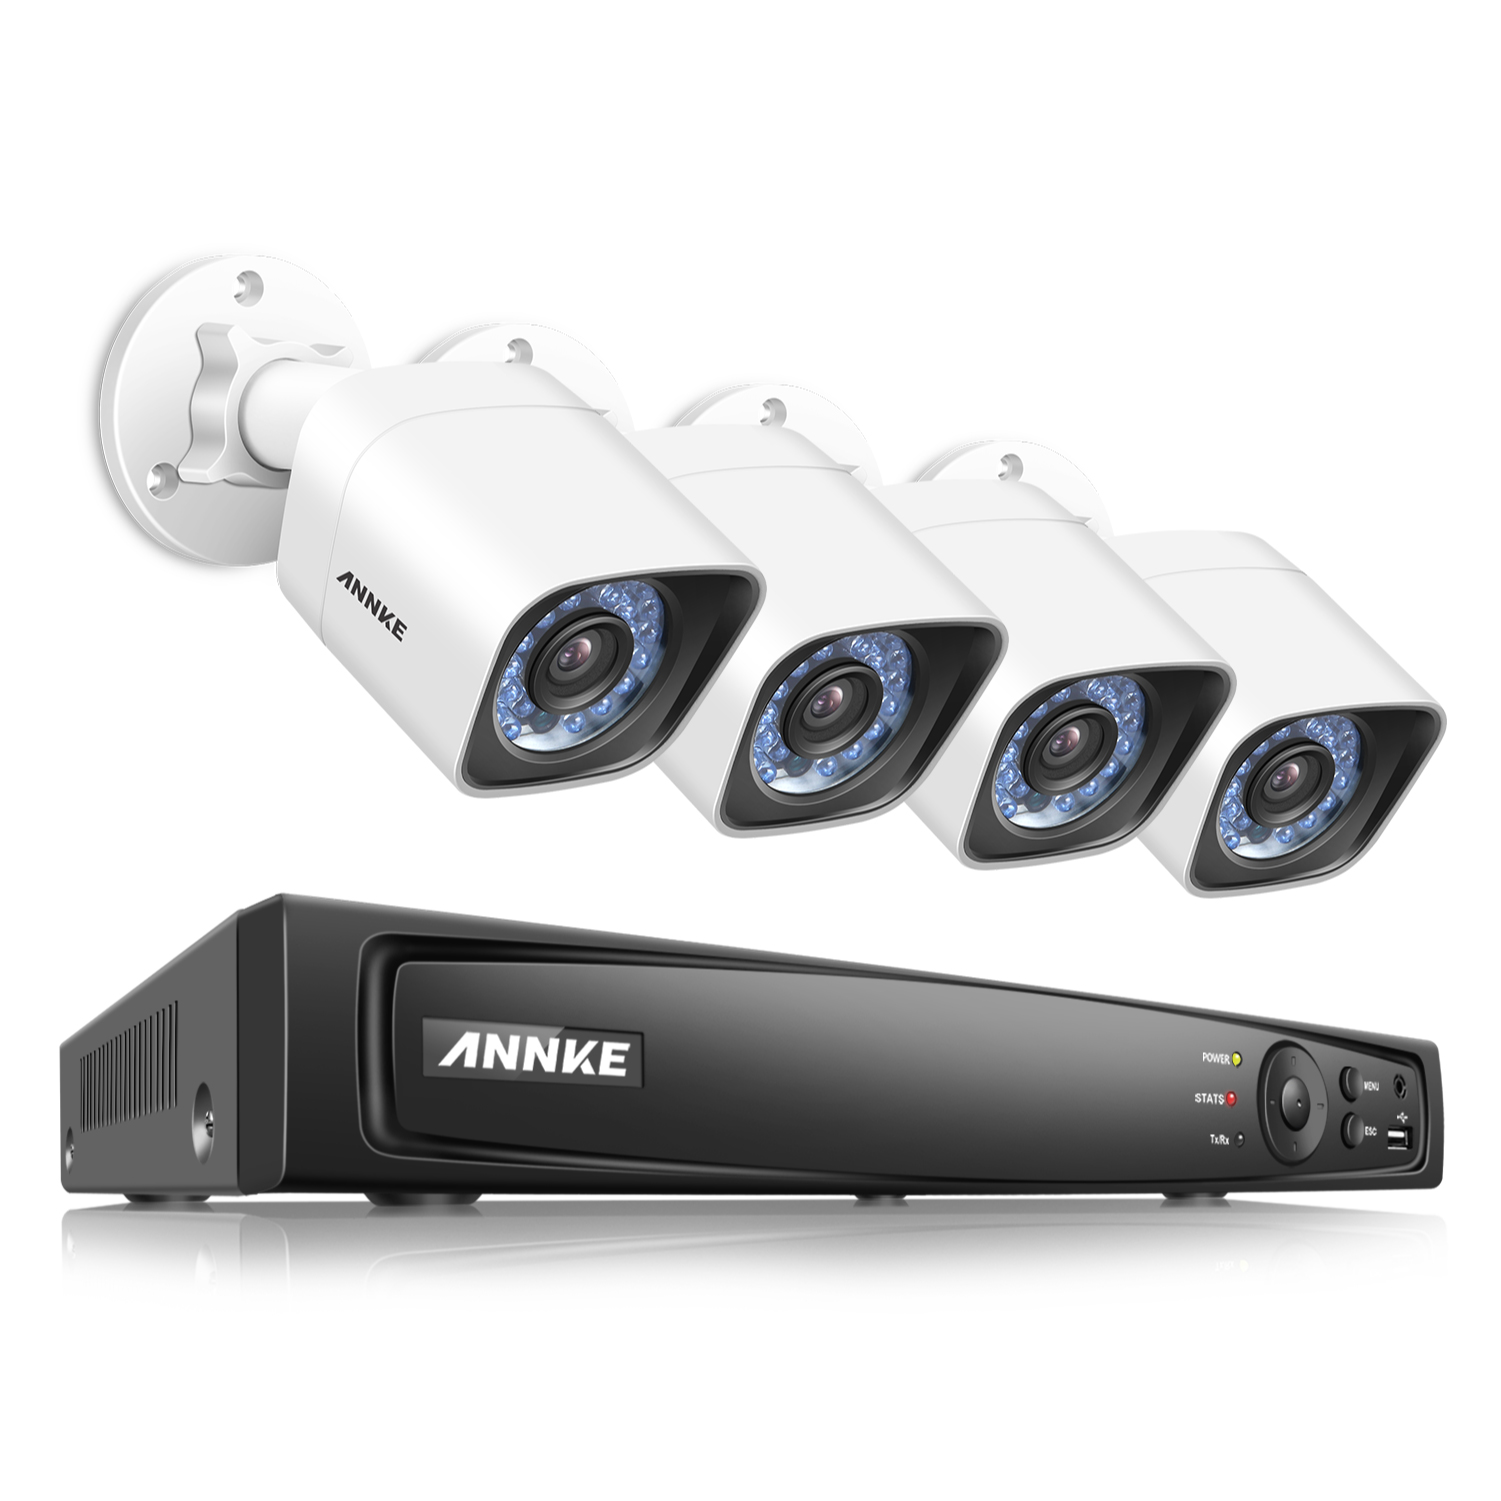 ANNKE 1080P POE NVR Home Surveillance Security System 4CH 2MP/3MP/4MP/5MP/6MP Network Video Recorder and (4) HD 1920TVL IP Cameras No Hard Drive Disk